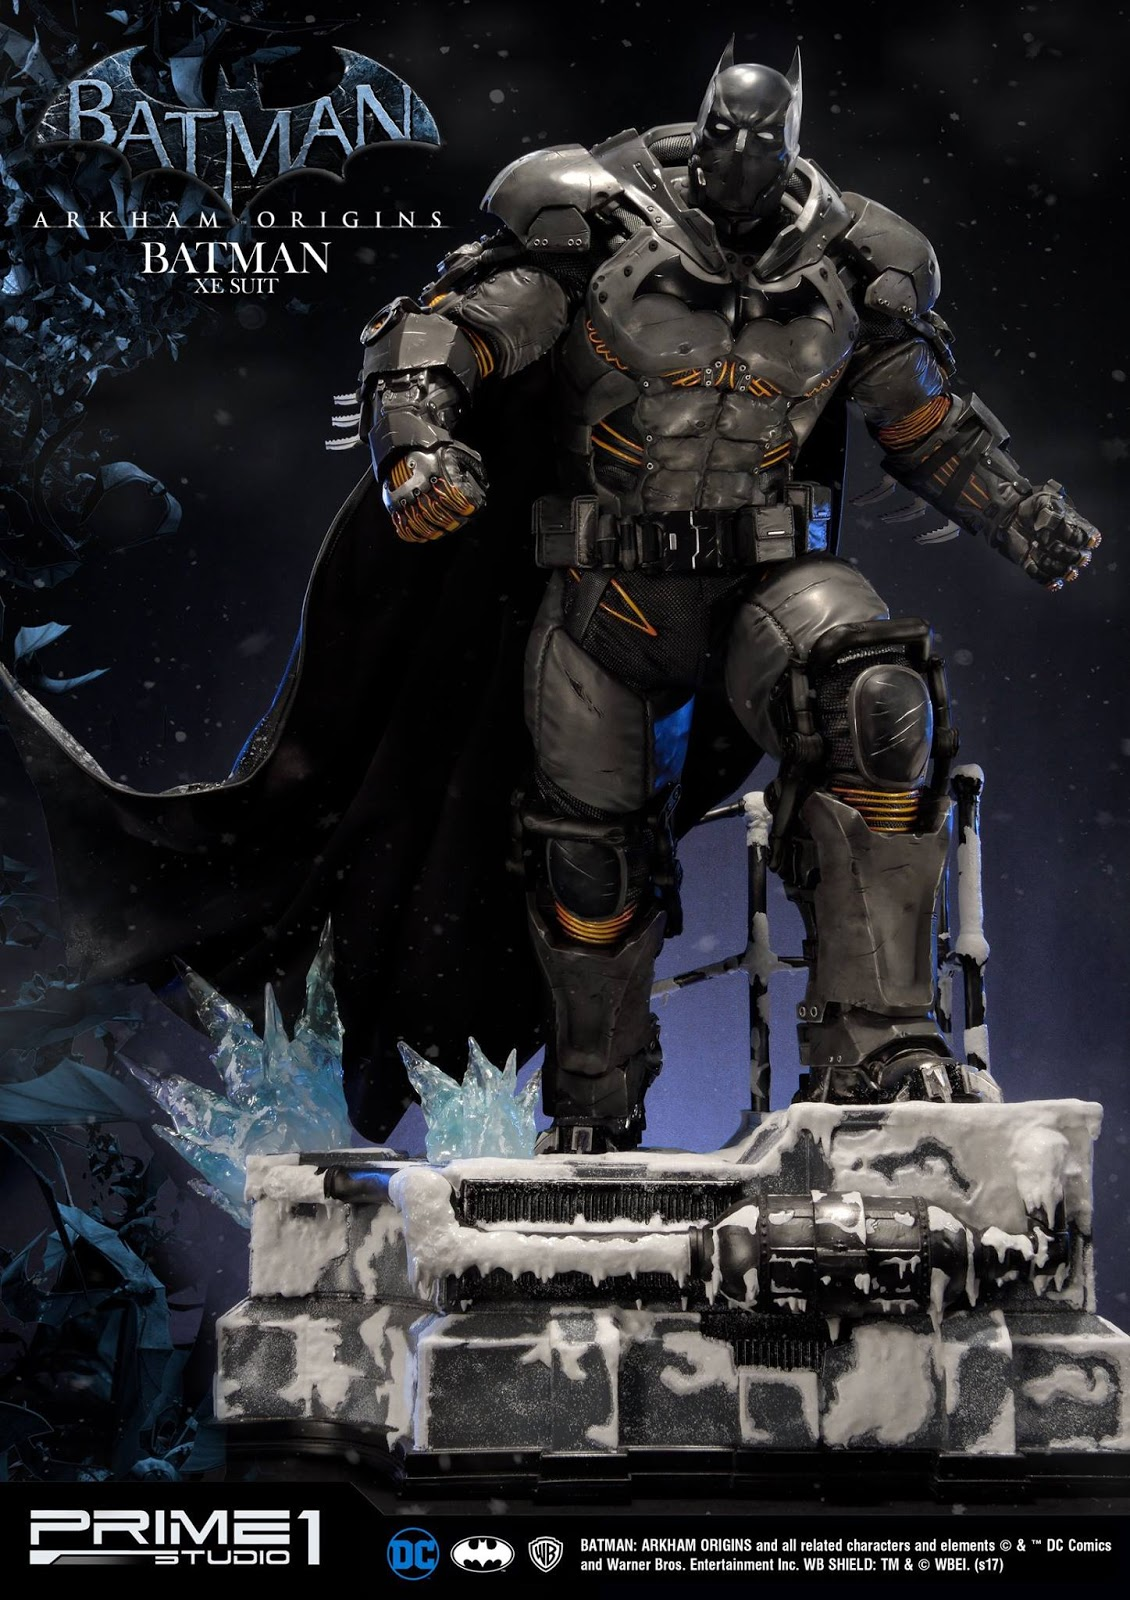 Infinite Earths This Prime 1 Studio Batman XE Statue Is Ice Cold